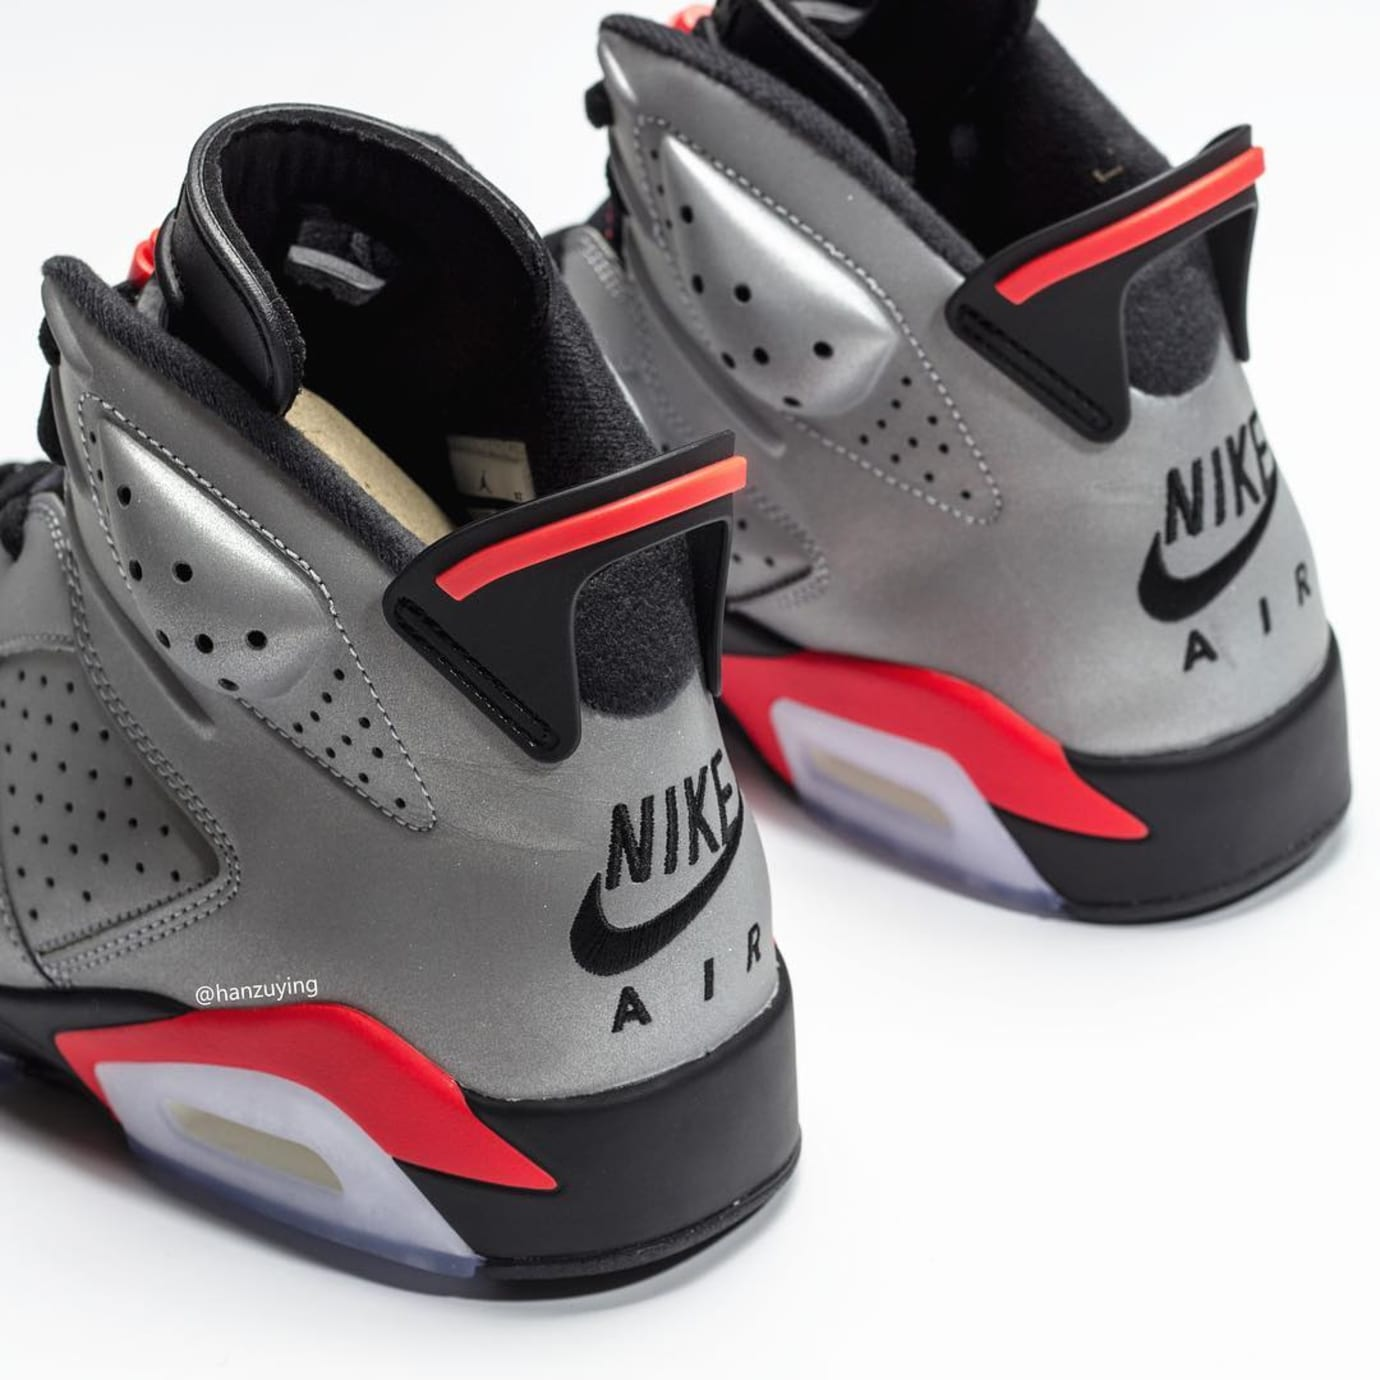 20fe6dabe7e268 Image via Hanzuying · Air Jordan 6 Retro  Reflective Infrared  CI4072-001  Heel